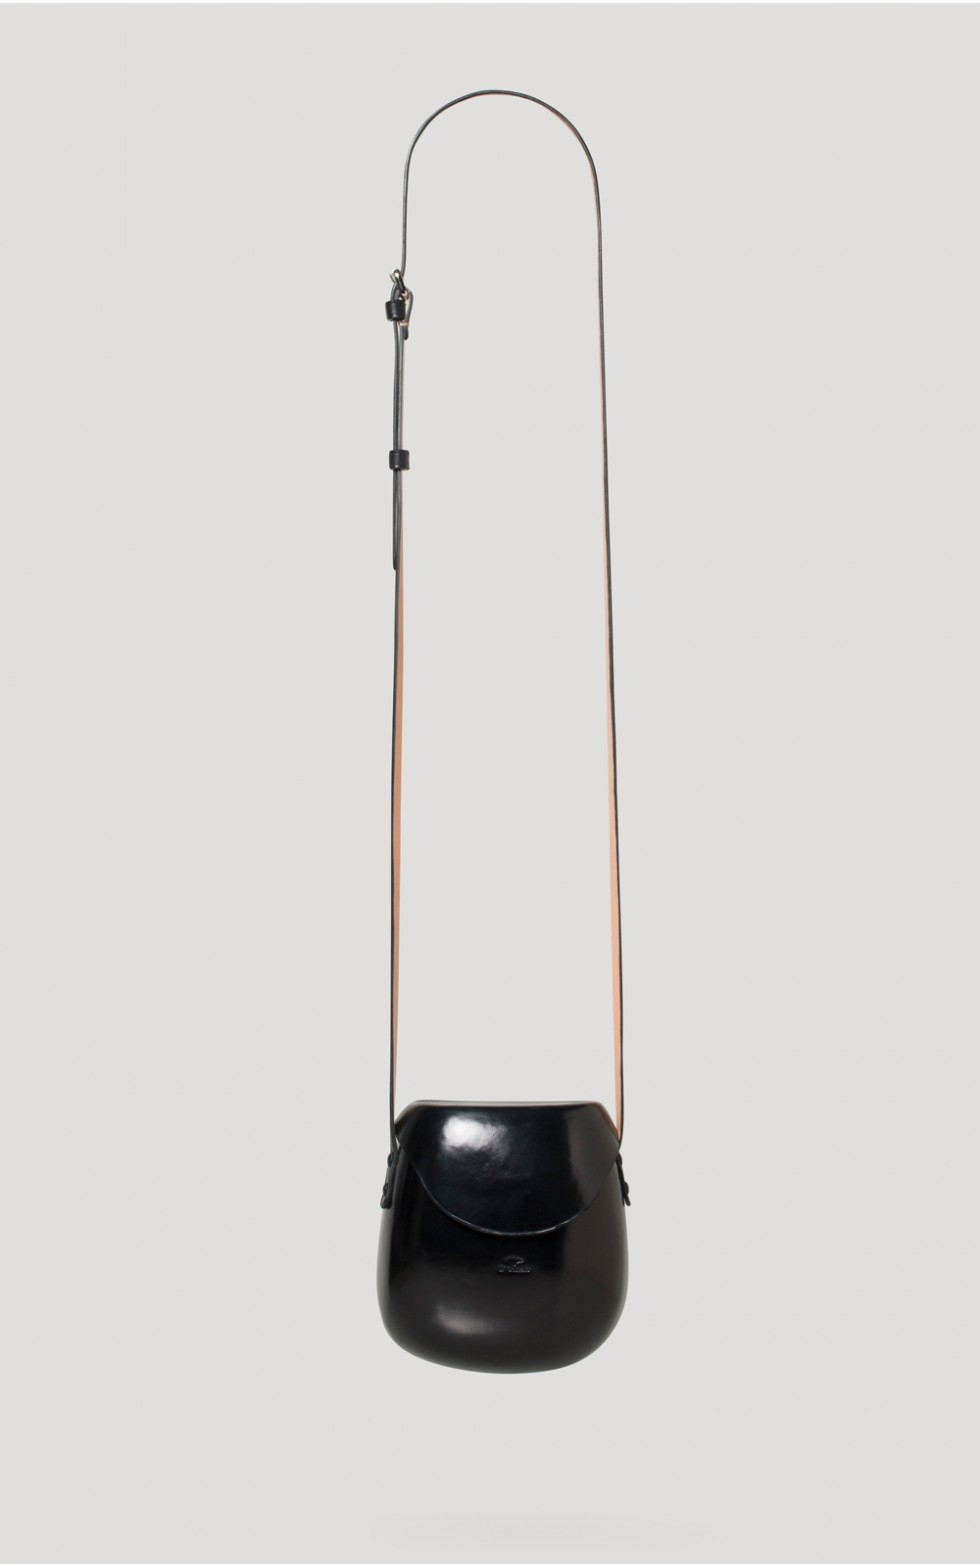 rachelcomey.com:womens-store:accessories-1:il-bussetto-city-bag-3.html?color=Black.jpg